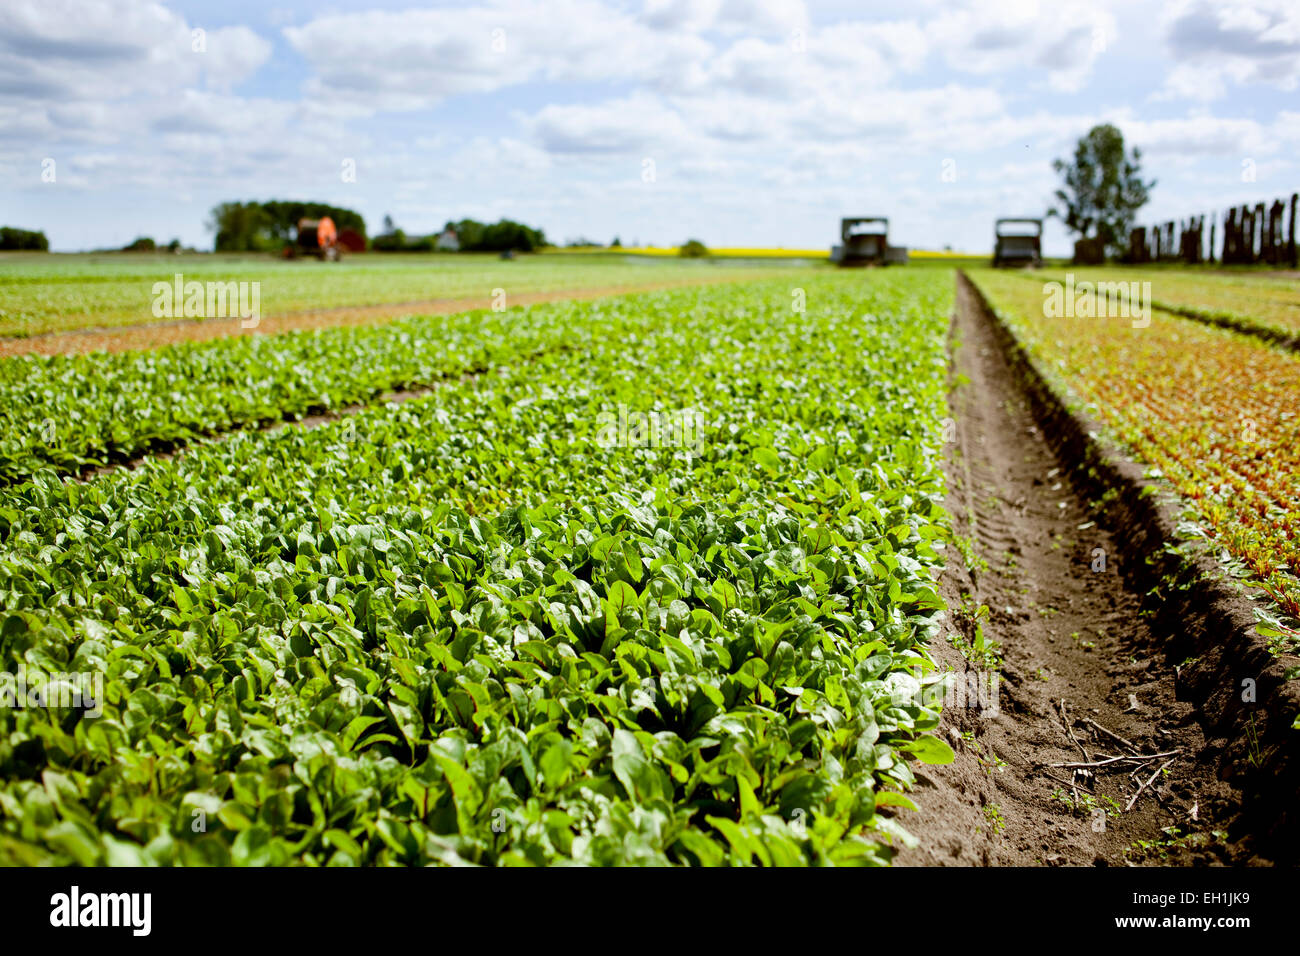 Green leafy vegetables on field - Stock Image